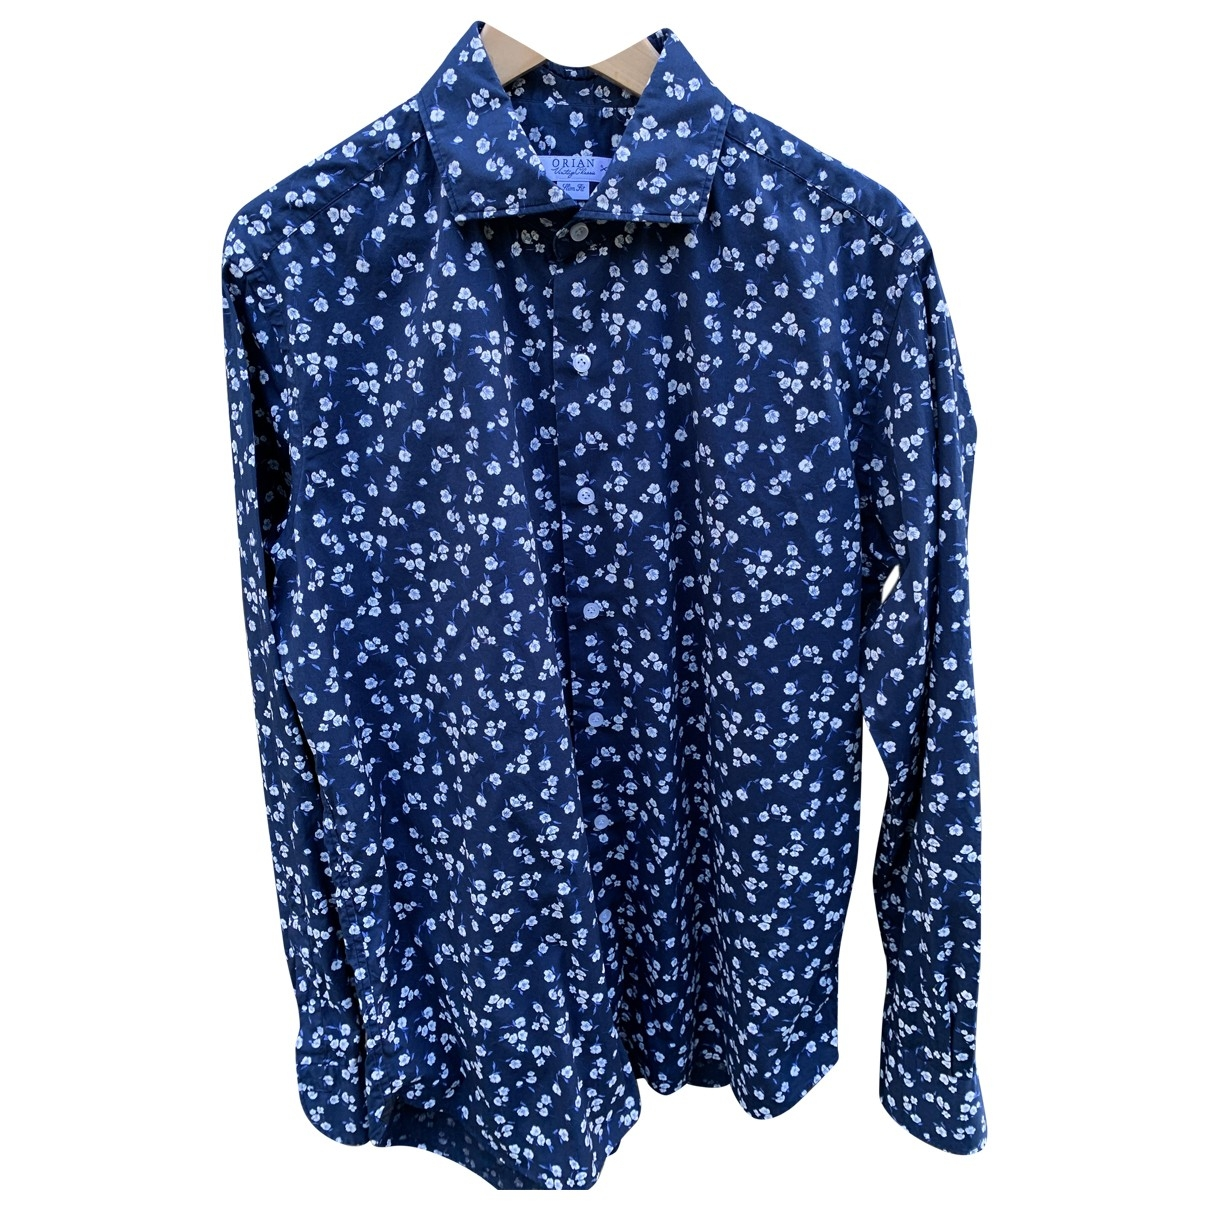 Non Signé / Unsigned \N Blue Cotton Shirts for Men 43 EU (tour de cou / collar)